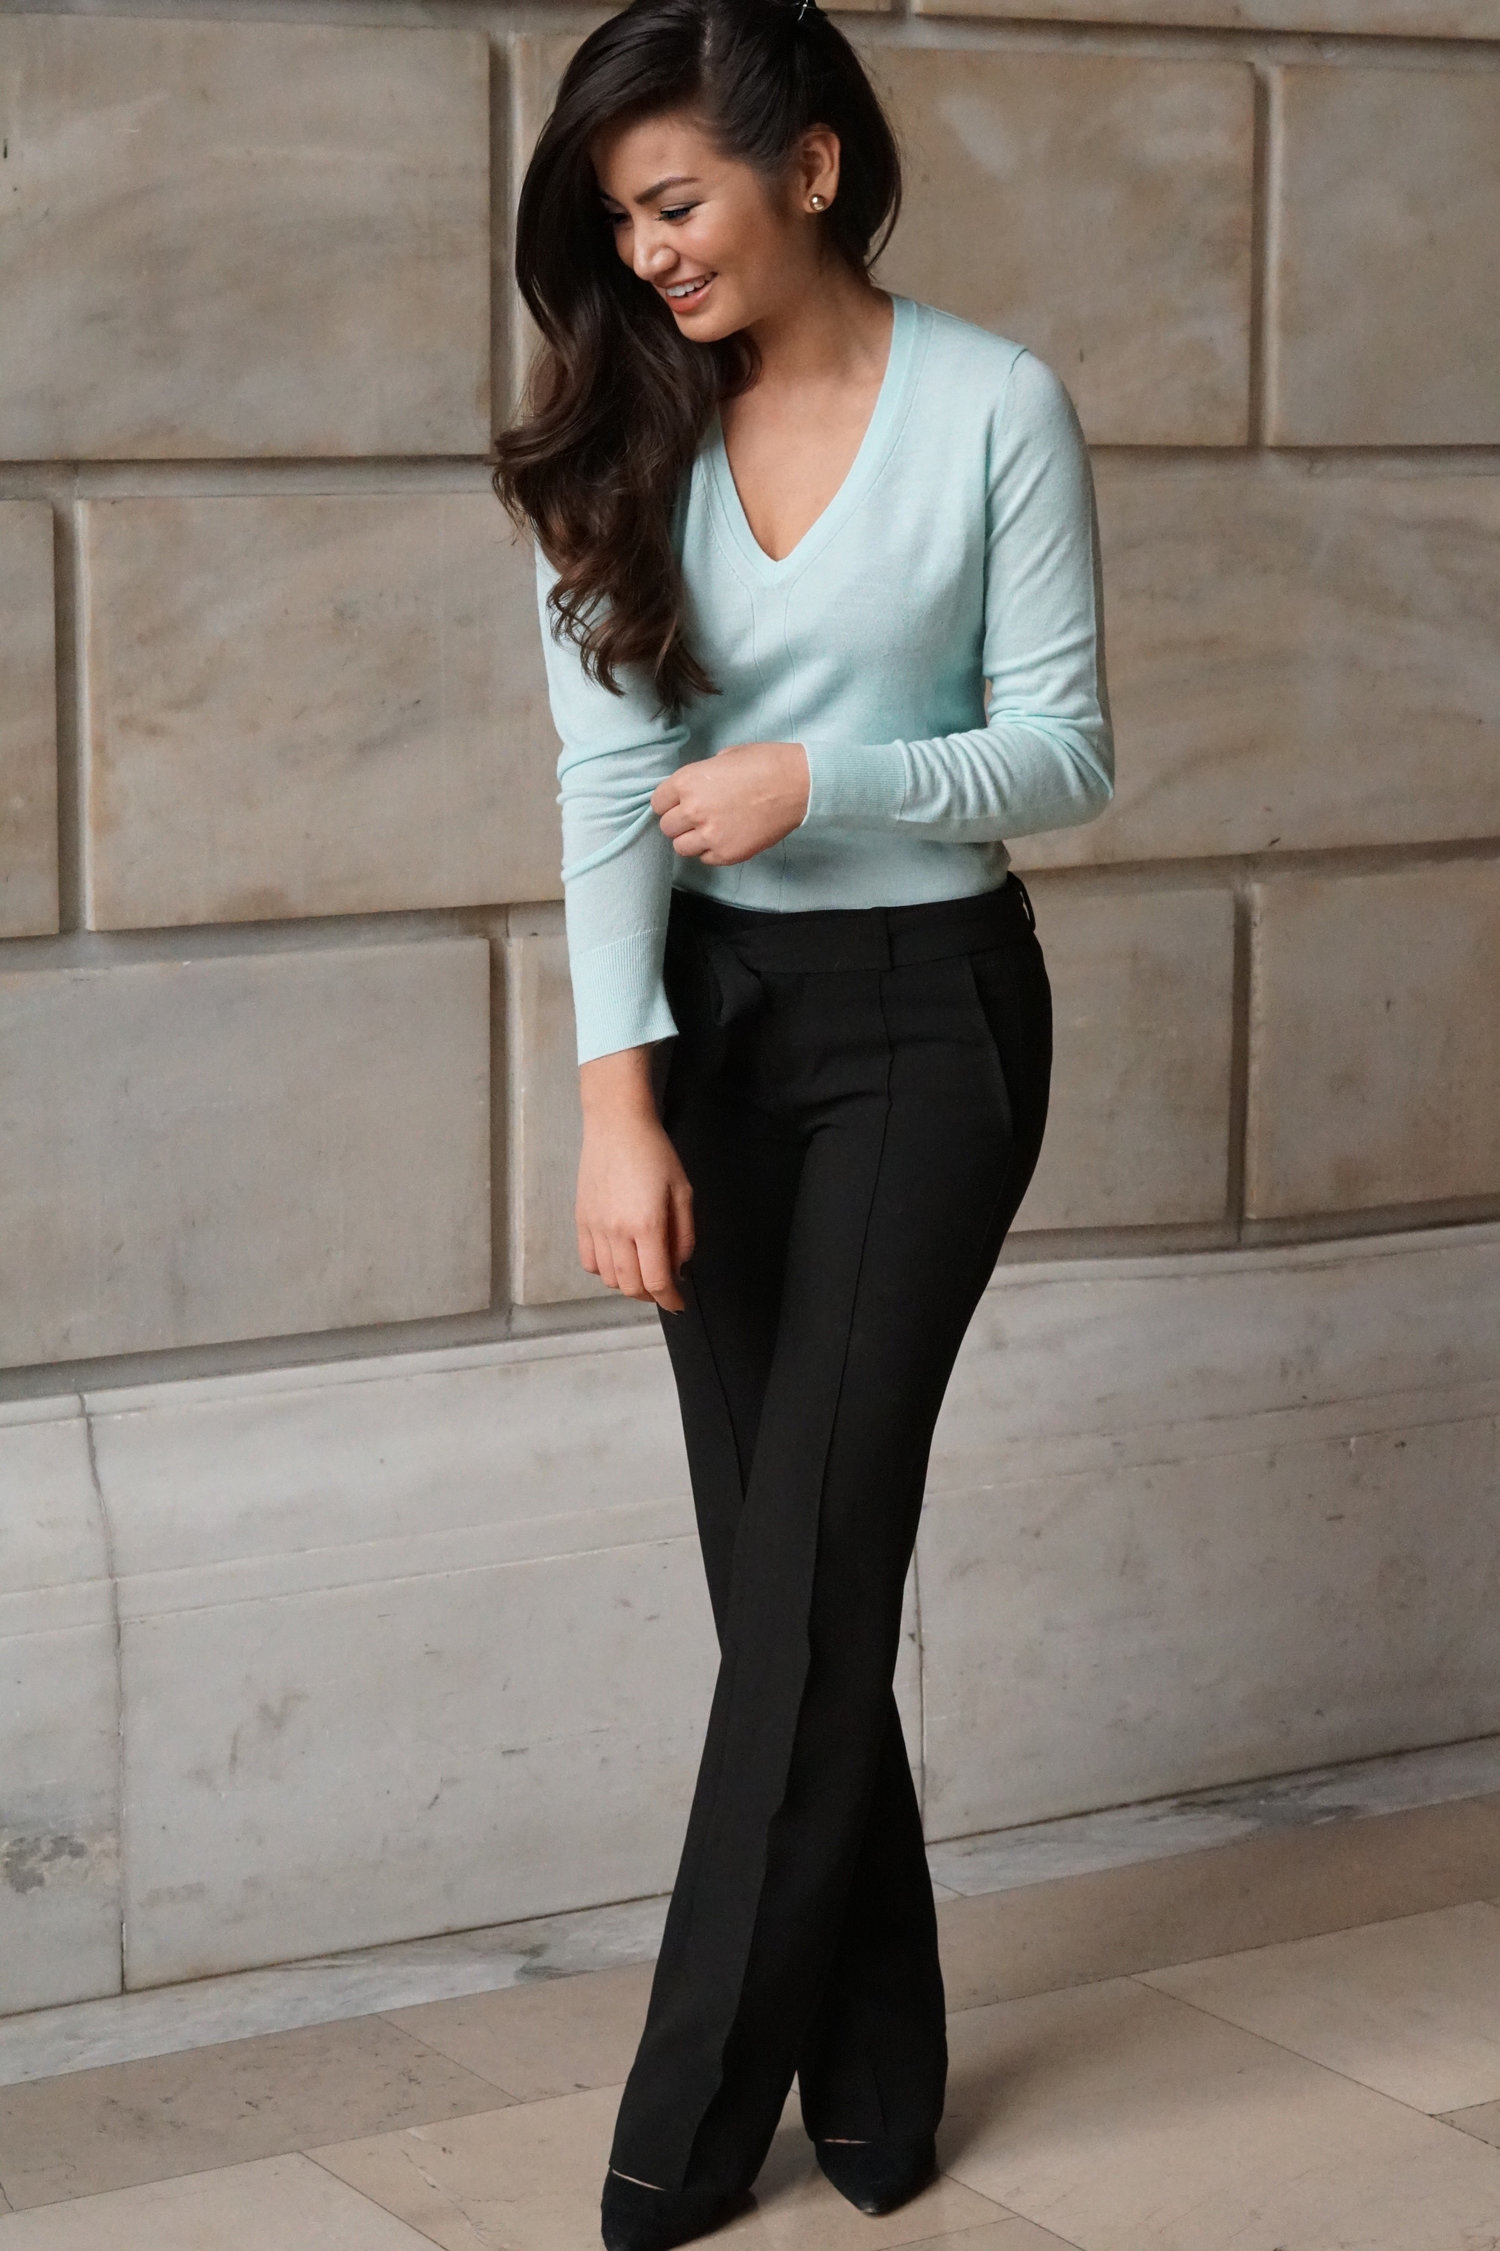 Topics tagged under withlovecaila on bachandbachettefans.net Banana+Republic+Mint+Sweater+Caila+Quinn?format=1500w